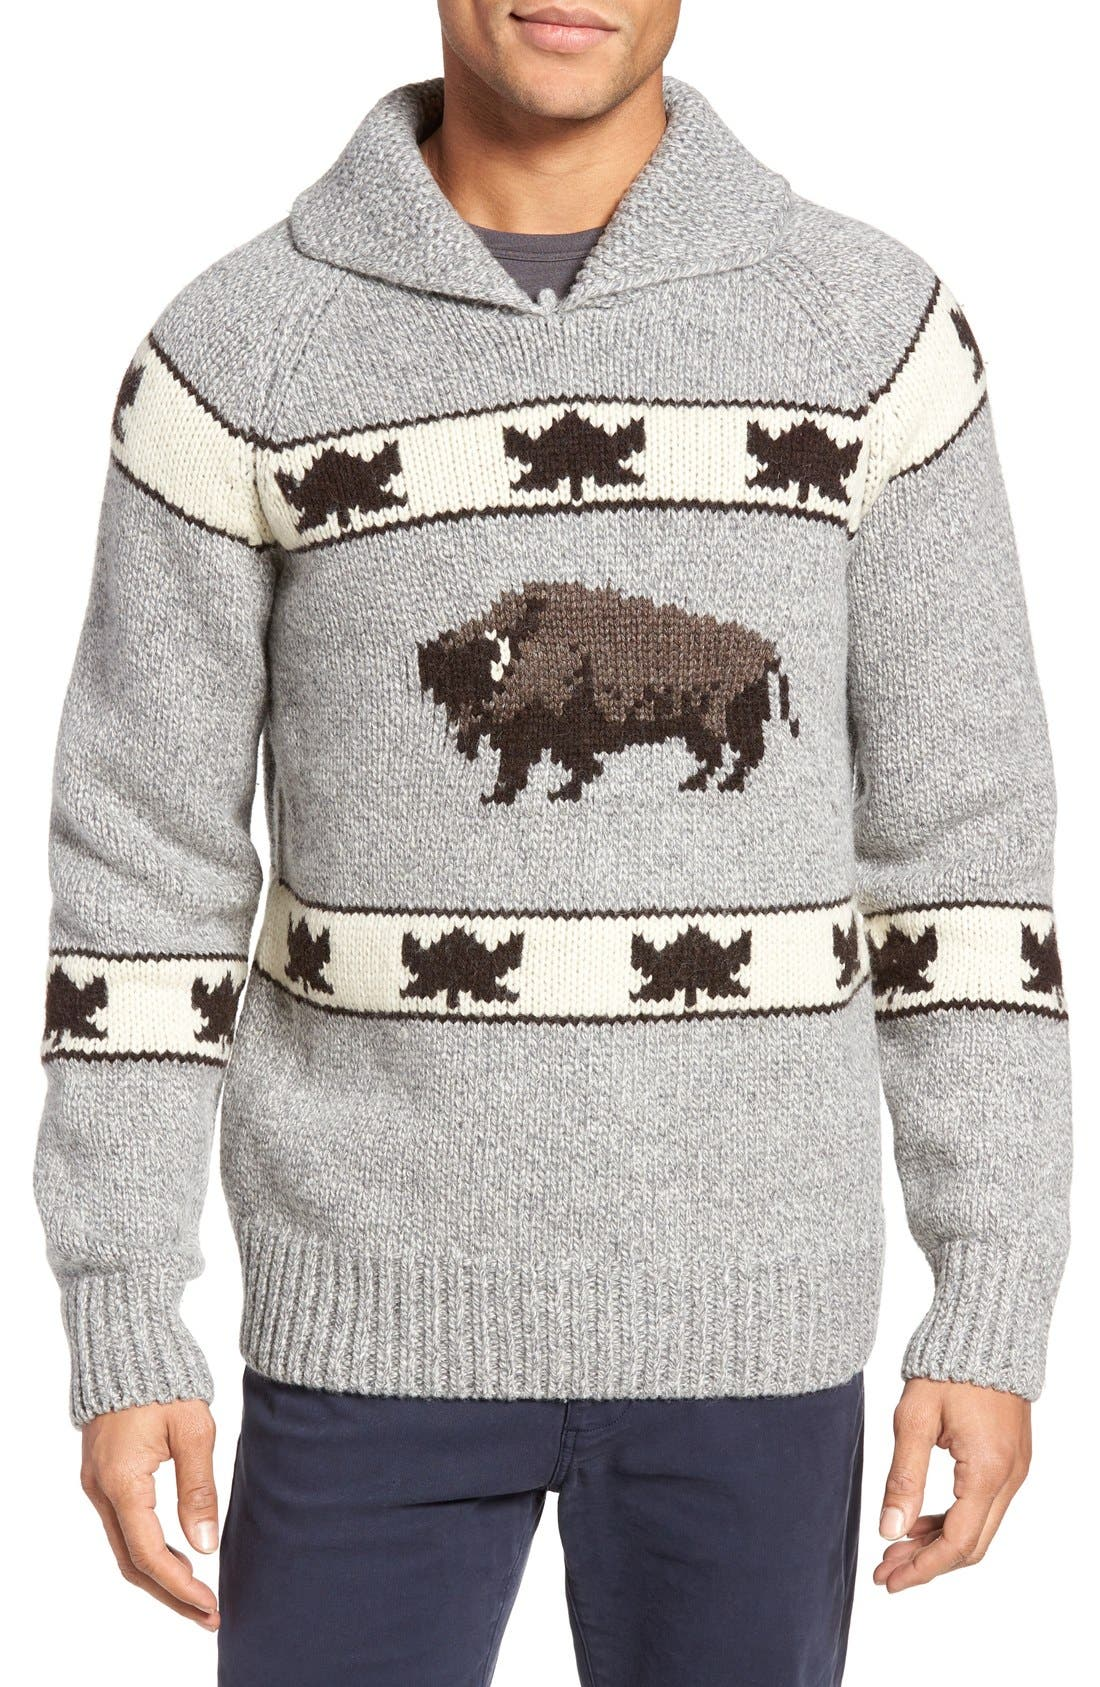 Cowichan Pullover Sweater,                         Main,                         color, Heather Grey